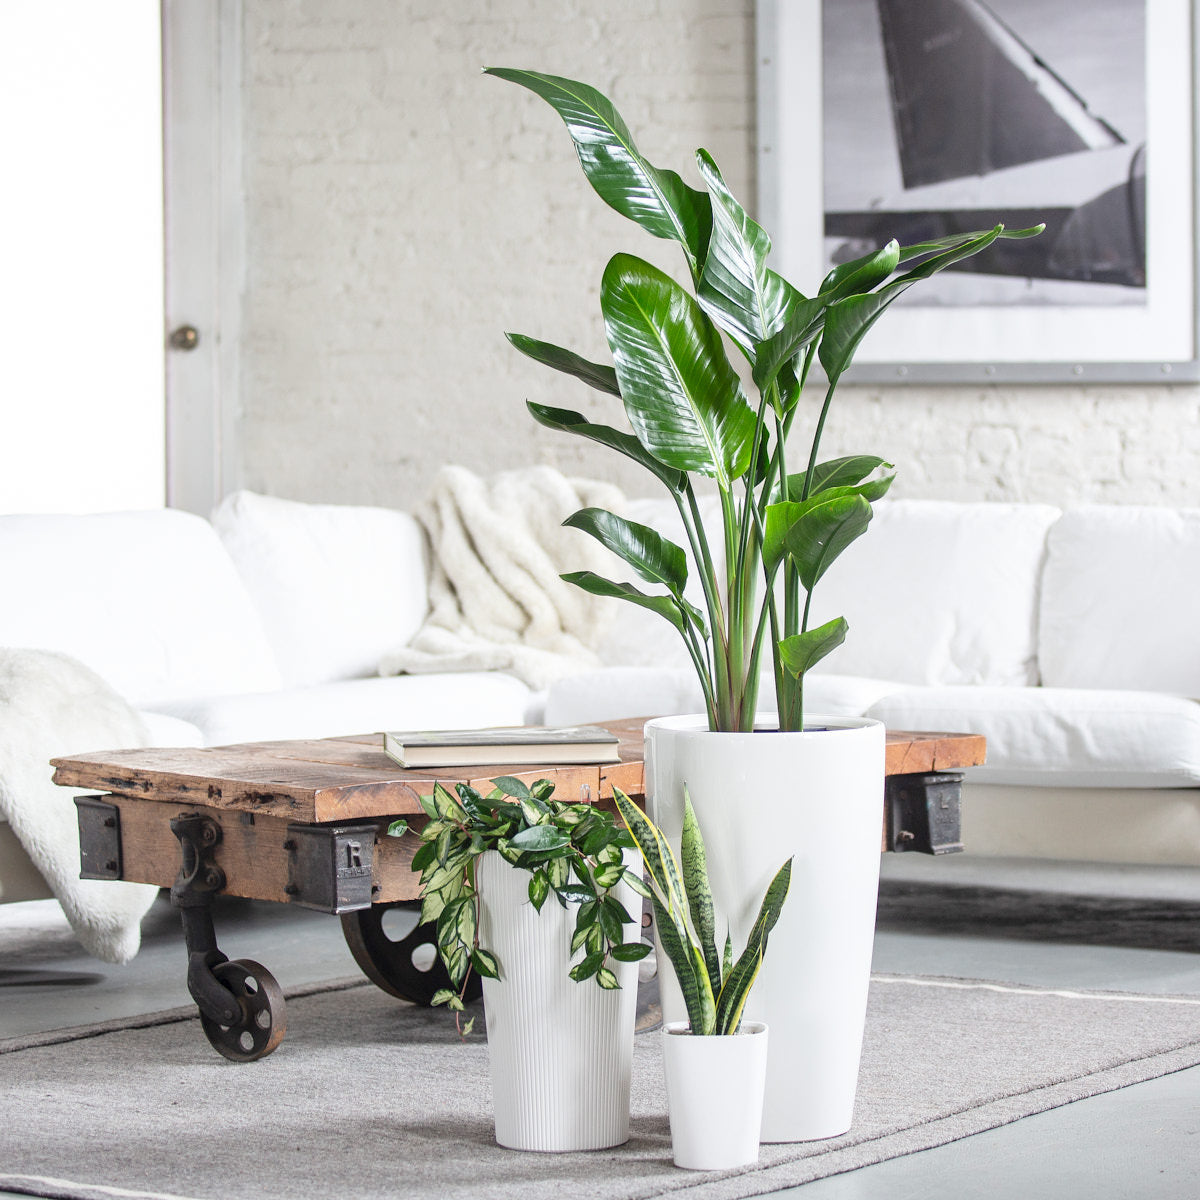 Nolita Plant Bundle - White | 3 Plants In The Bundle | My City Plants